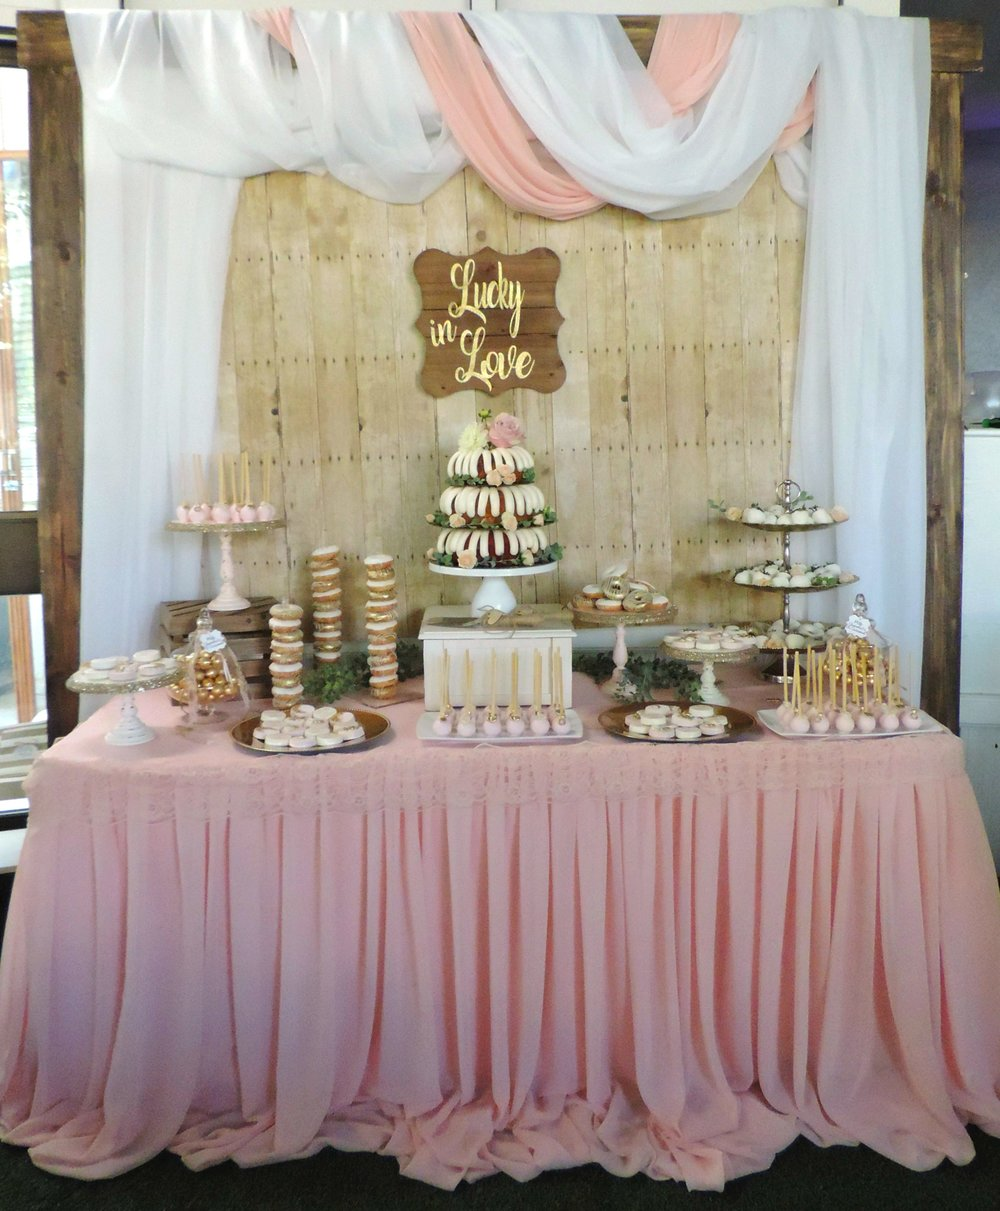 Rustic Wedding-Lucky In Love-Blush Pink Wedding-Wedding-www.SugarPartiesLA.com.jpg